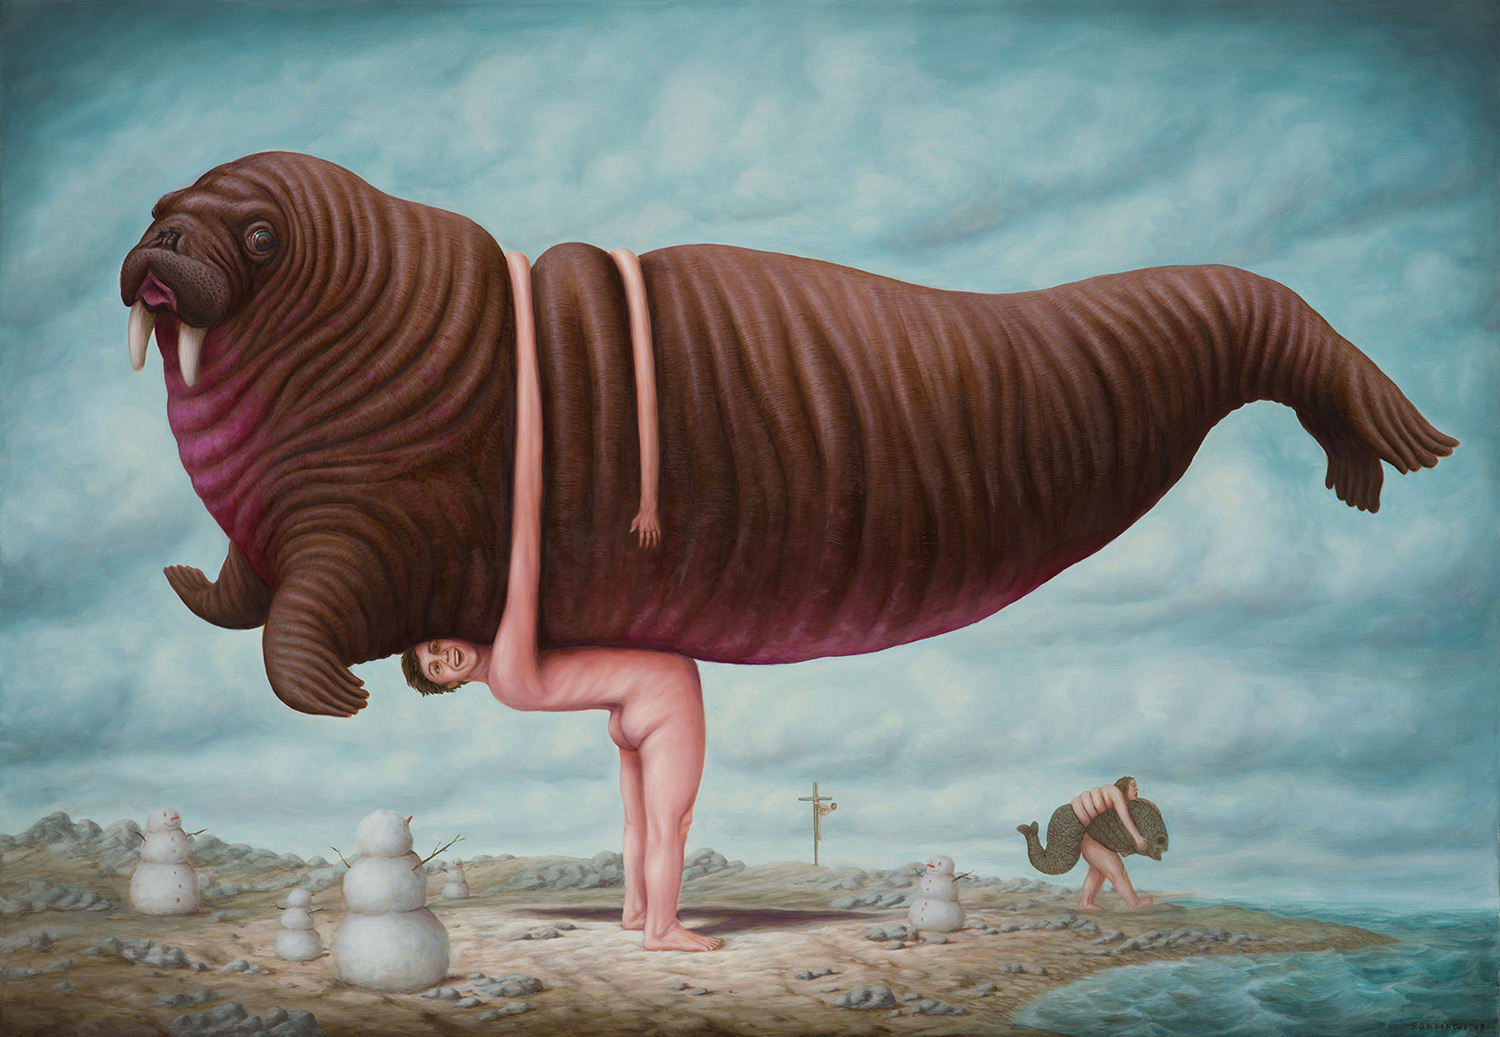 Cows, Moose, and Camels Contort into Yoga Poses and Other Surprising Positions in Paintings by Bruno Pontiroli | Colossal